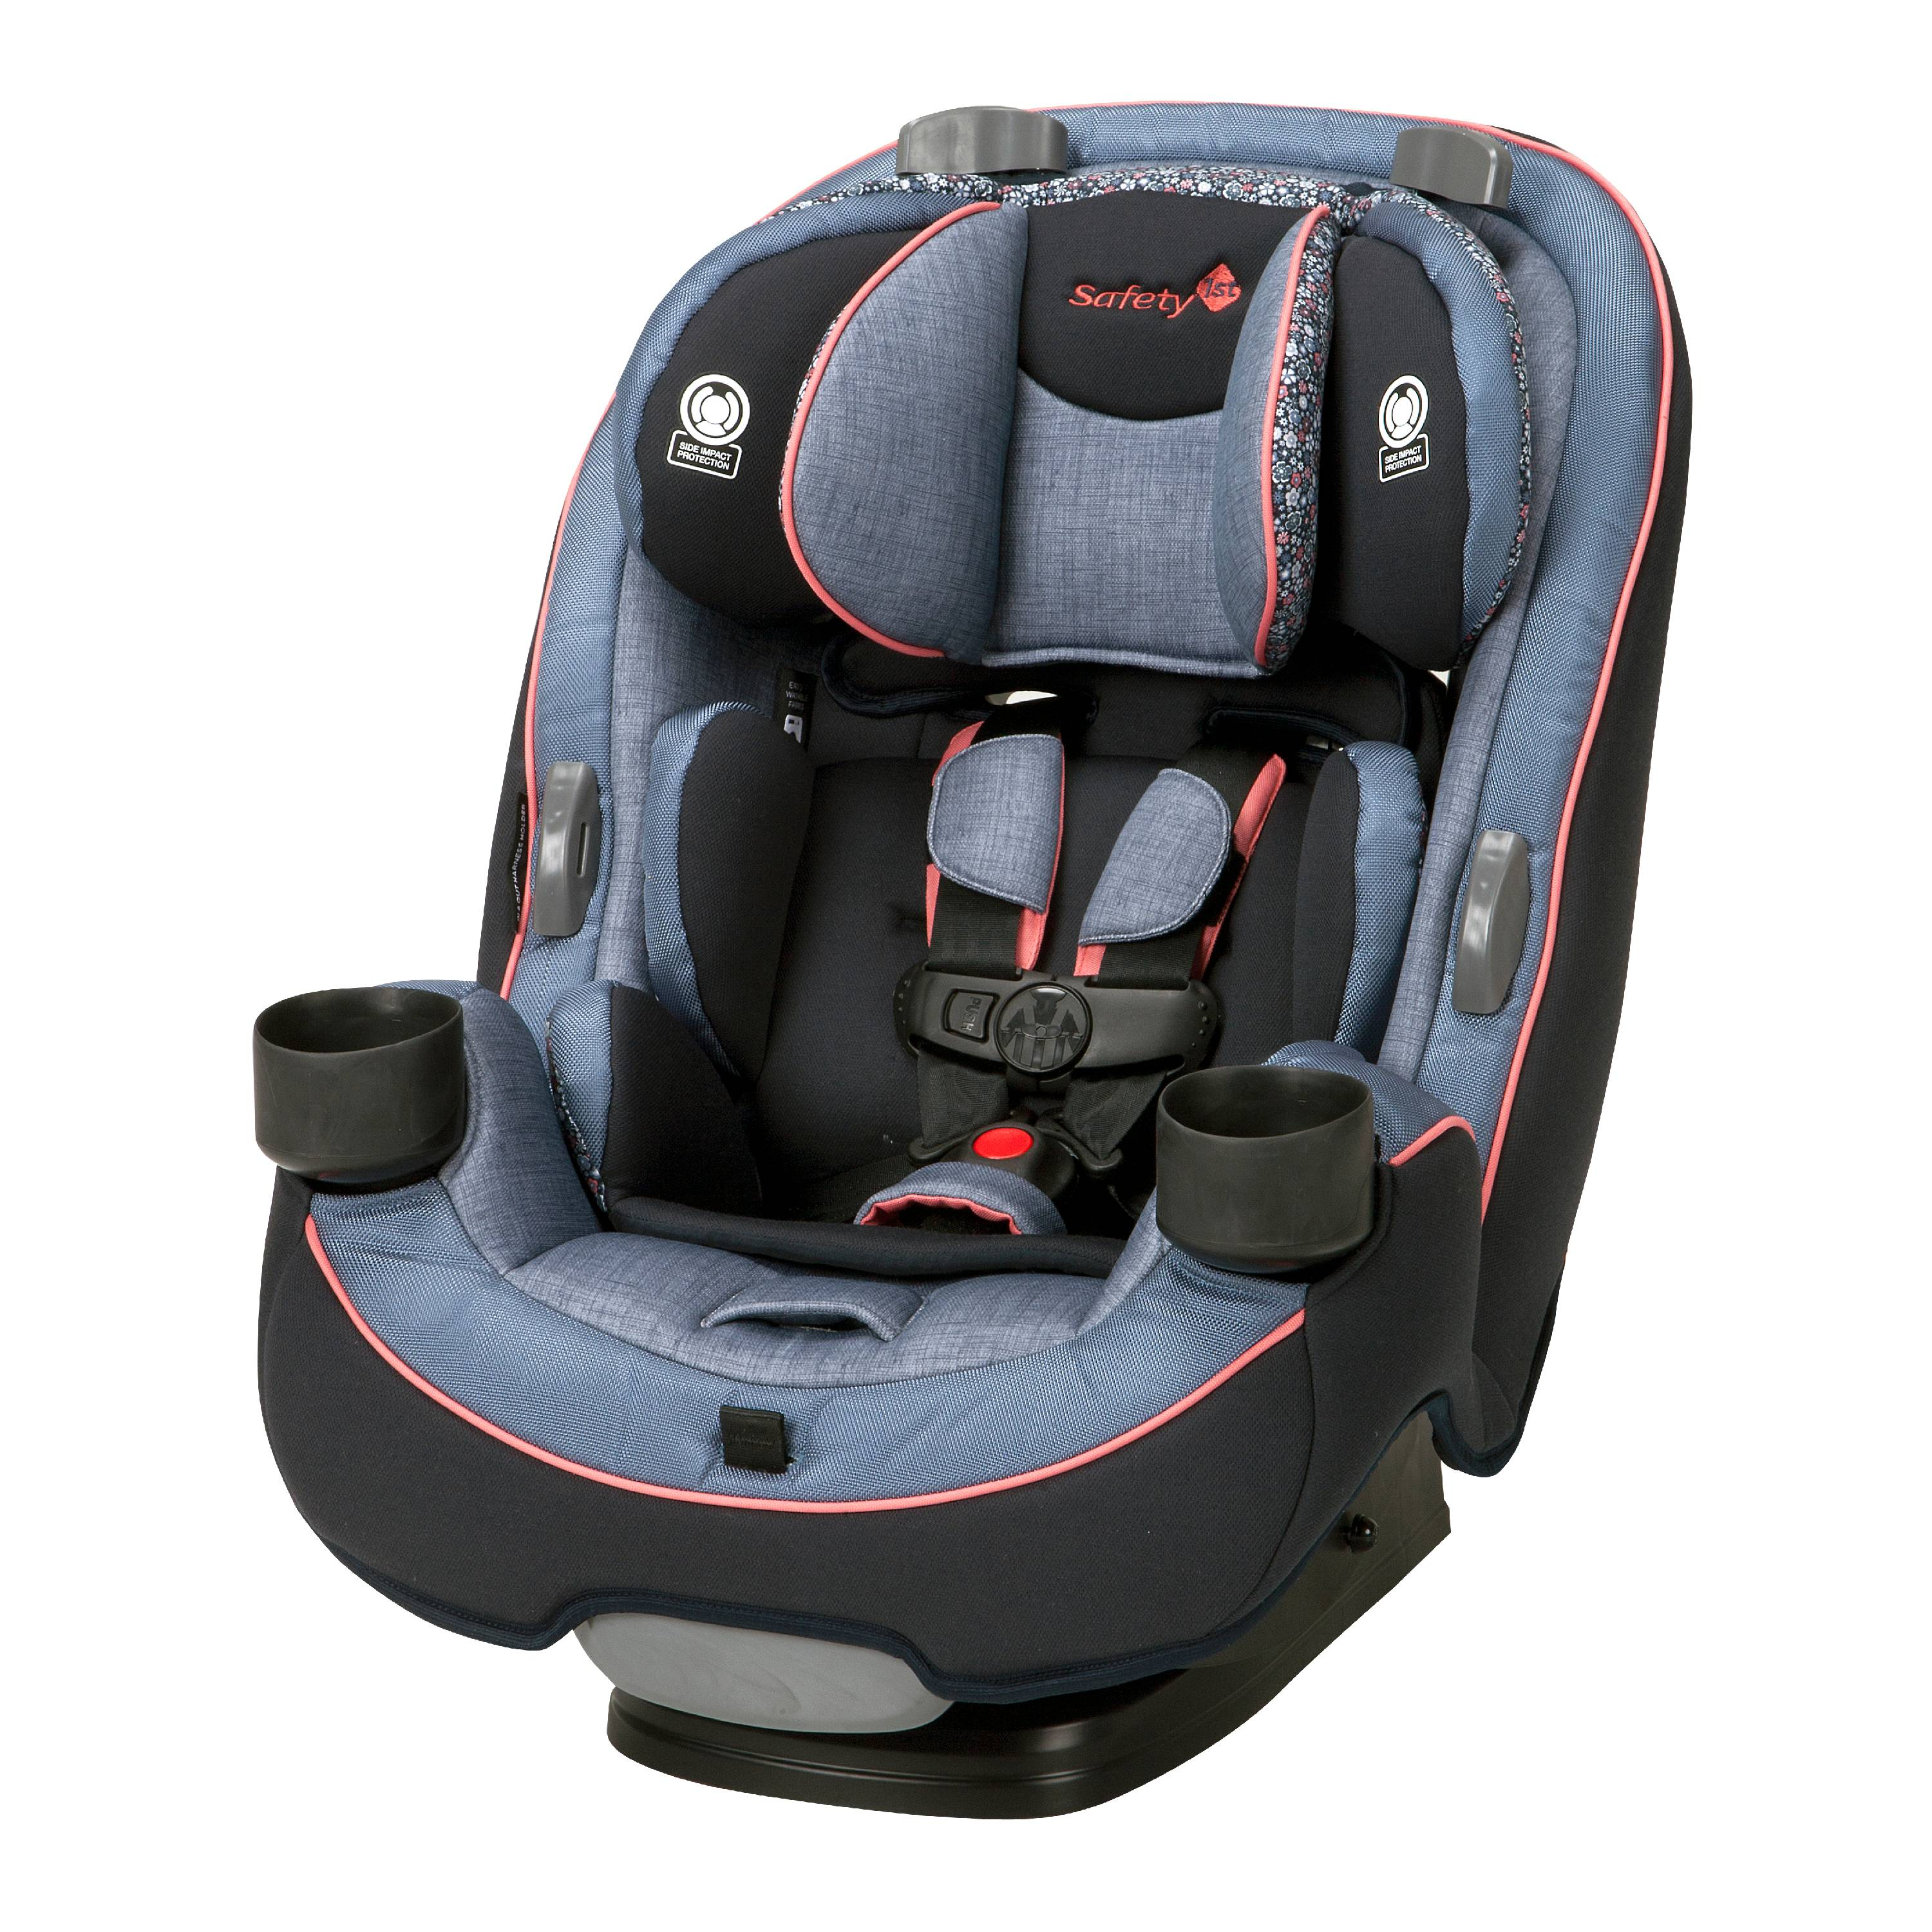 Safety 1�ᵗ Grow and Go 3-in-1 Convertible Car Seat, Lindy by Safety 1%CB%A2%E1%B5%97%C2%AE